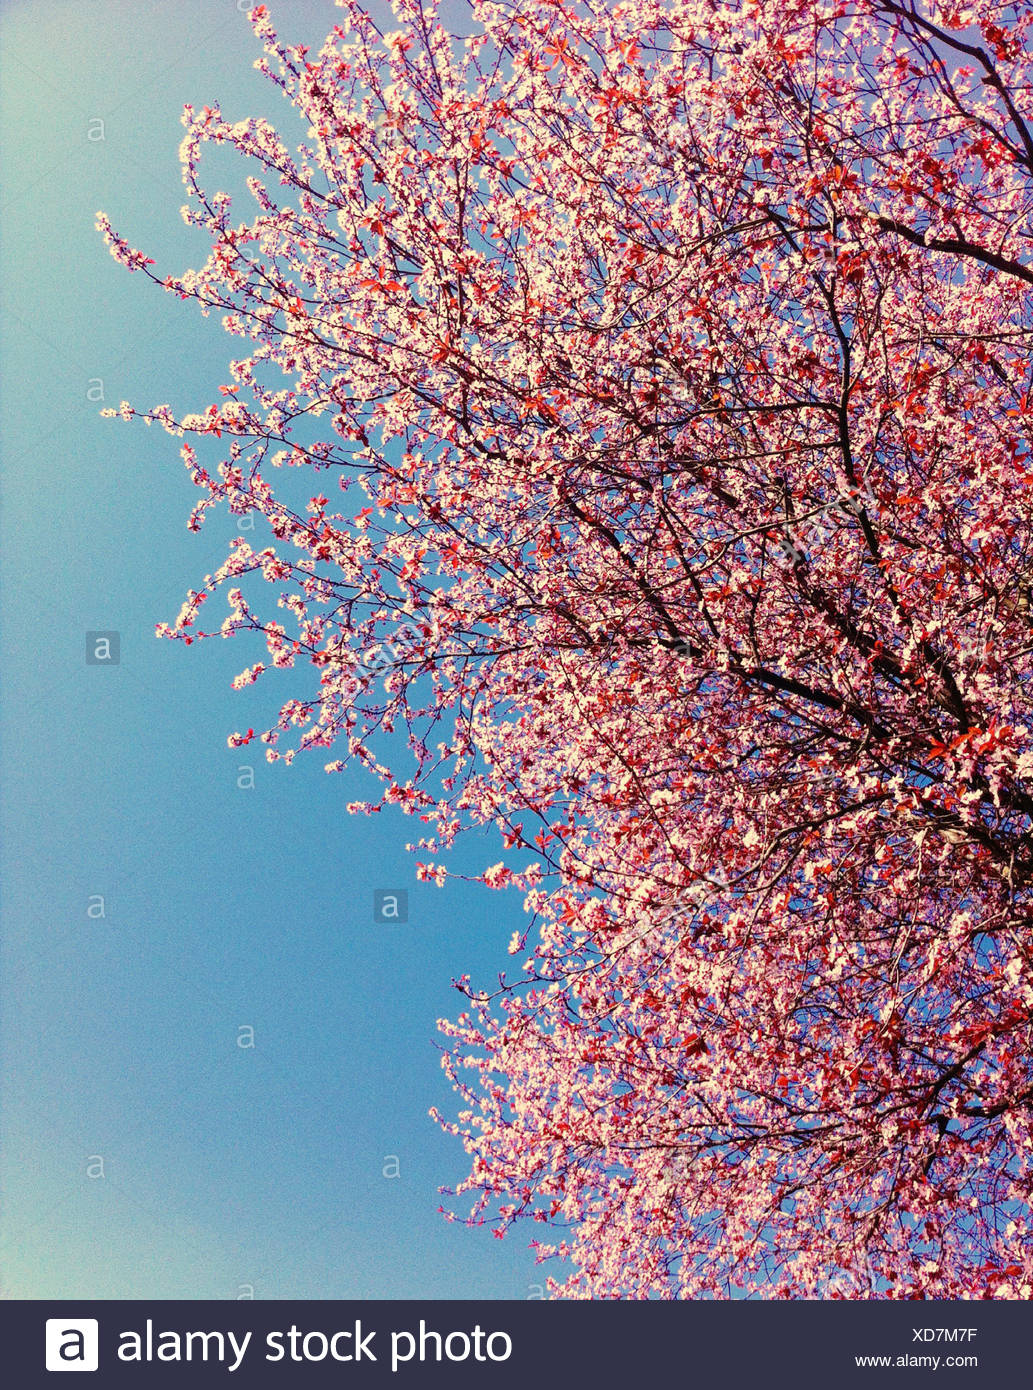 Pink cherry blossoms against blue sky, Vancouver, British Columbia, Canada - Stock Image